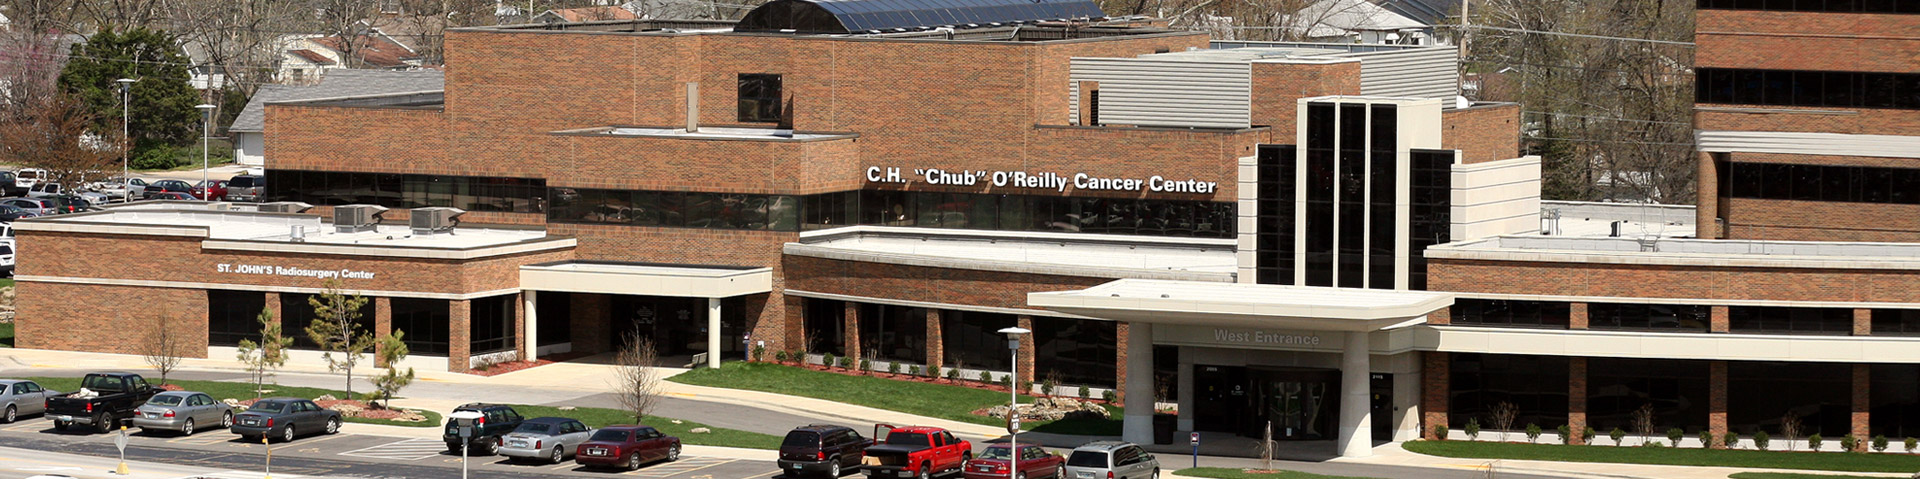 WEB_Hero_Location_CH-Chub-OReilly-Cancer-Center